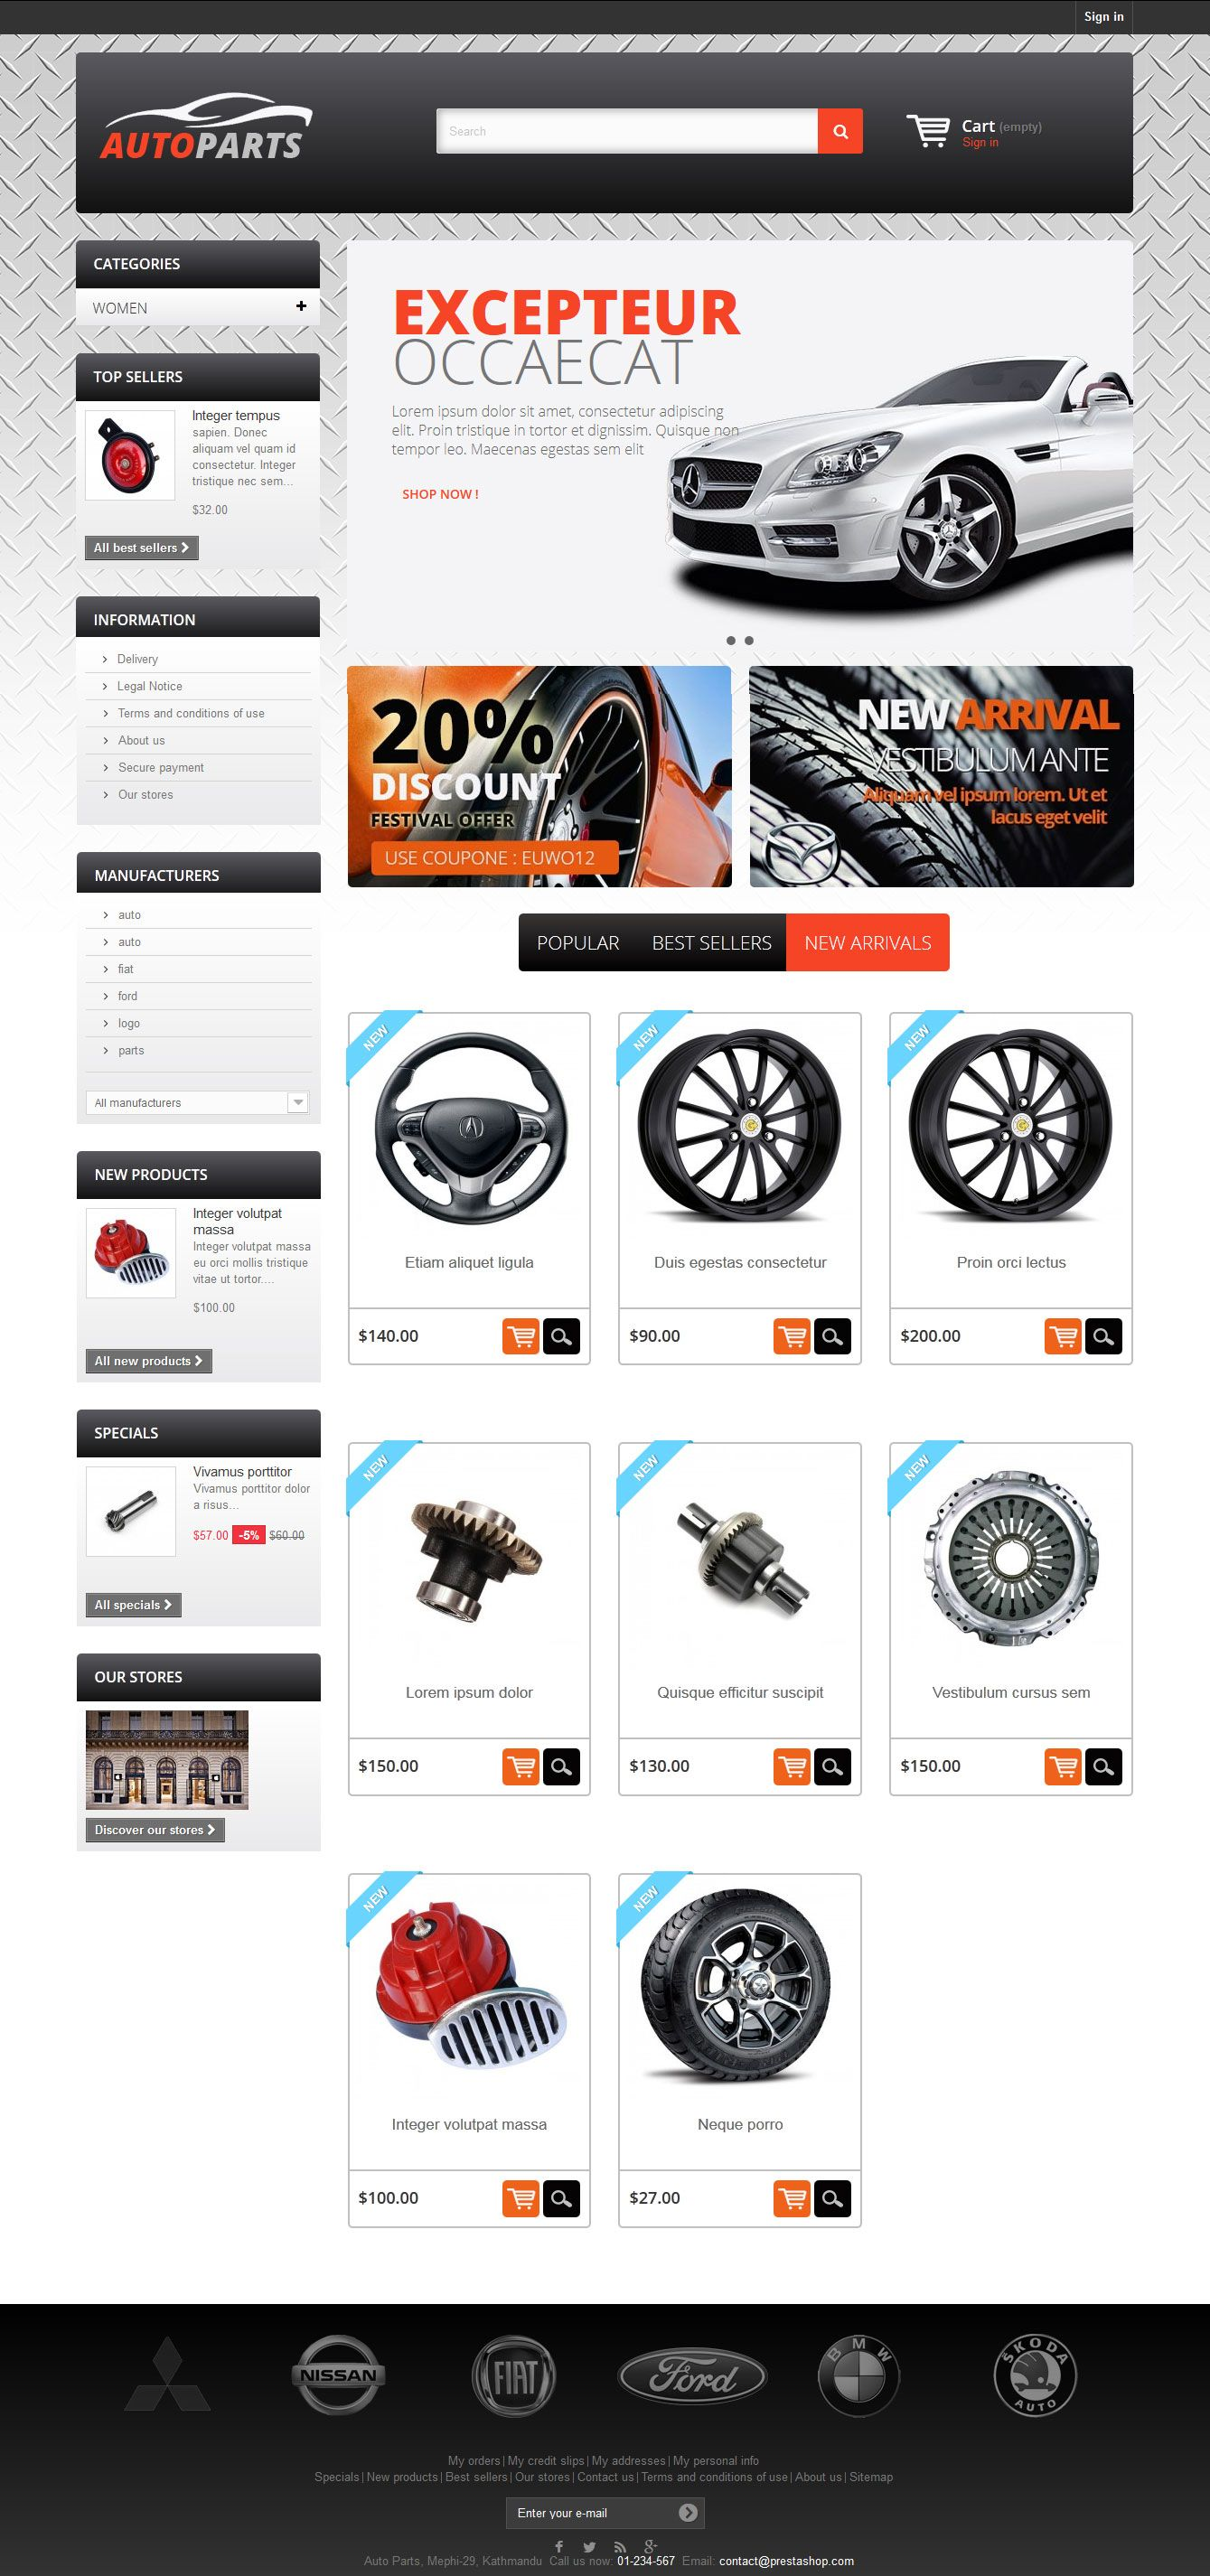 Auto Parts - PrestaShop Theme Screenshot 1